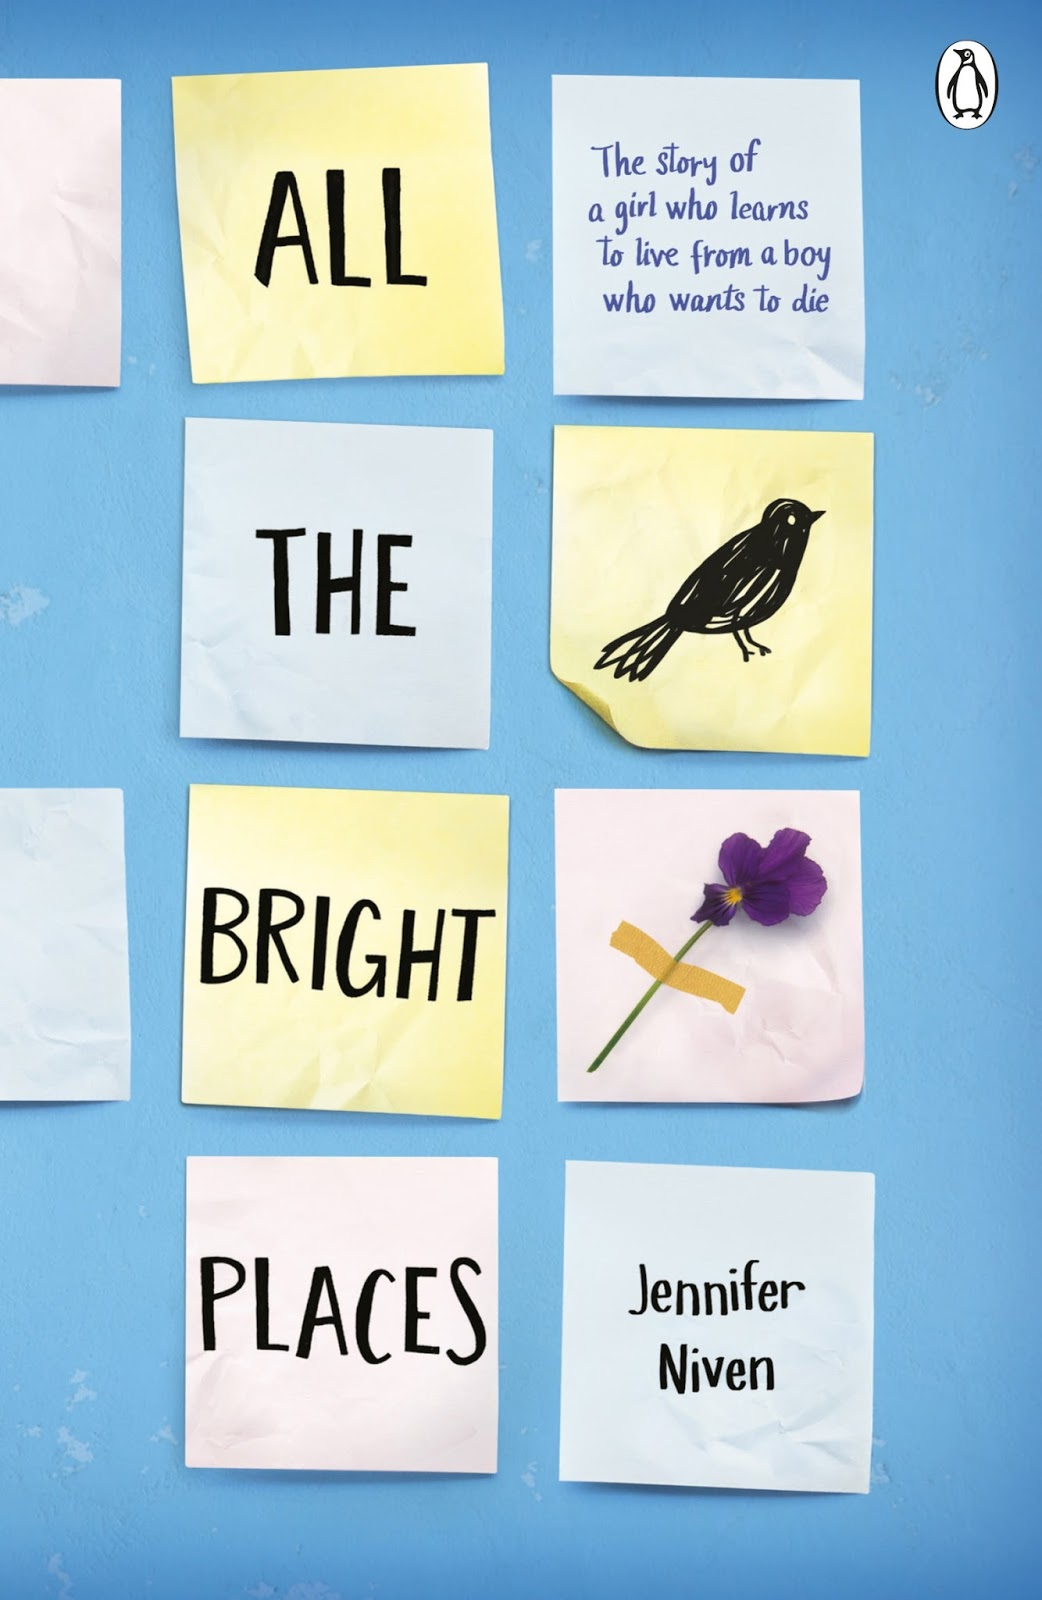 All The Bright Places Jennifer Niven cover